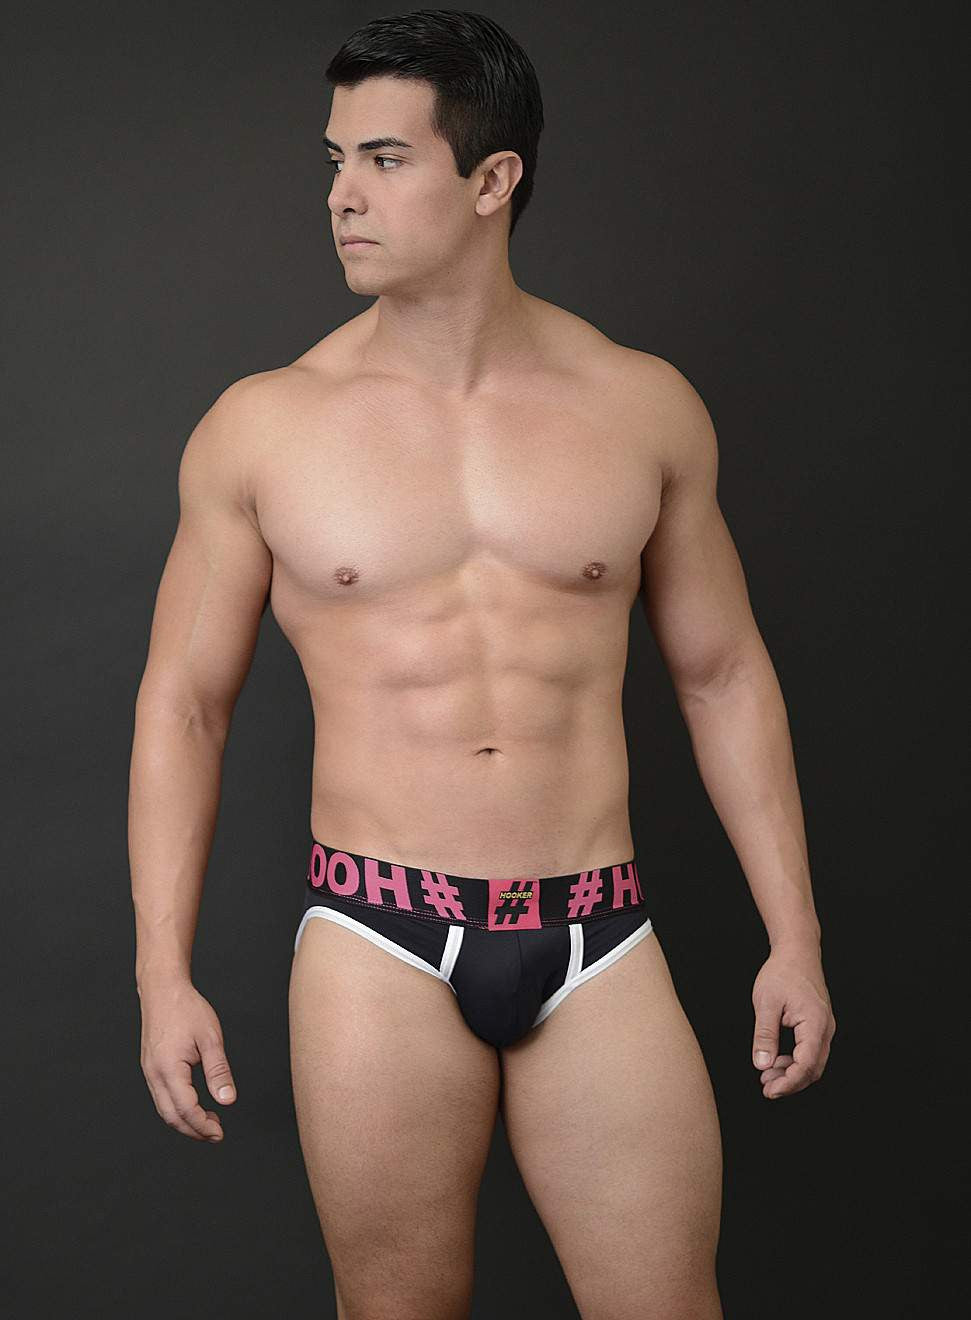 JOHNNY JOCK